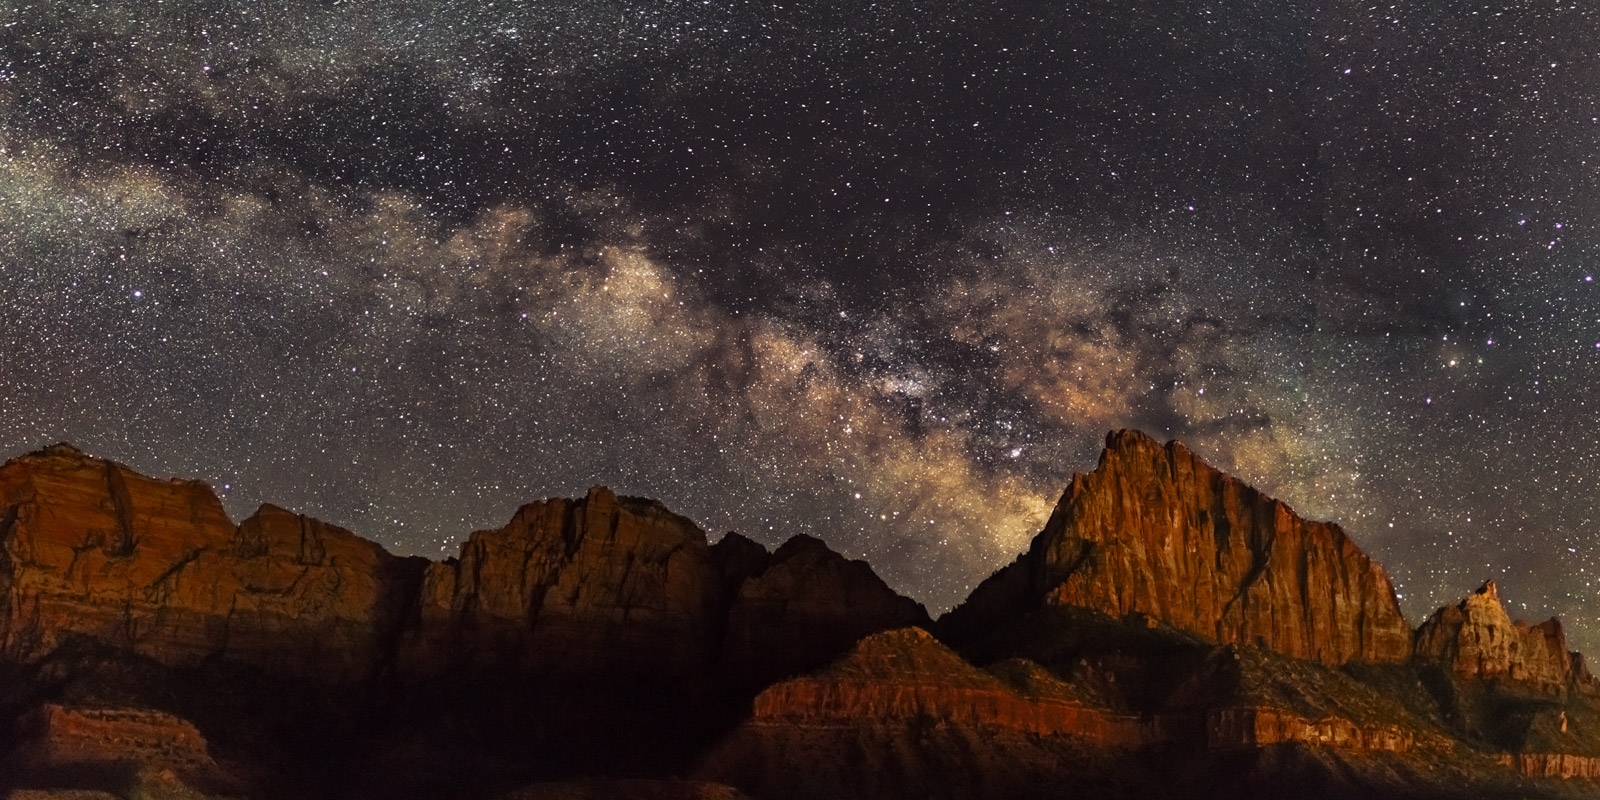 Utah, Milky Way, Zion National Park, The Watchman